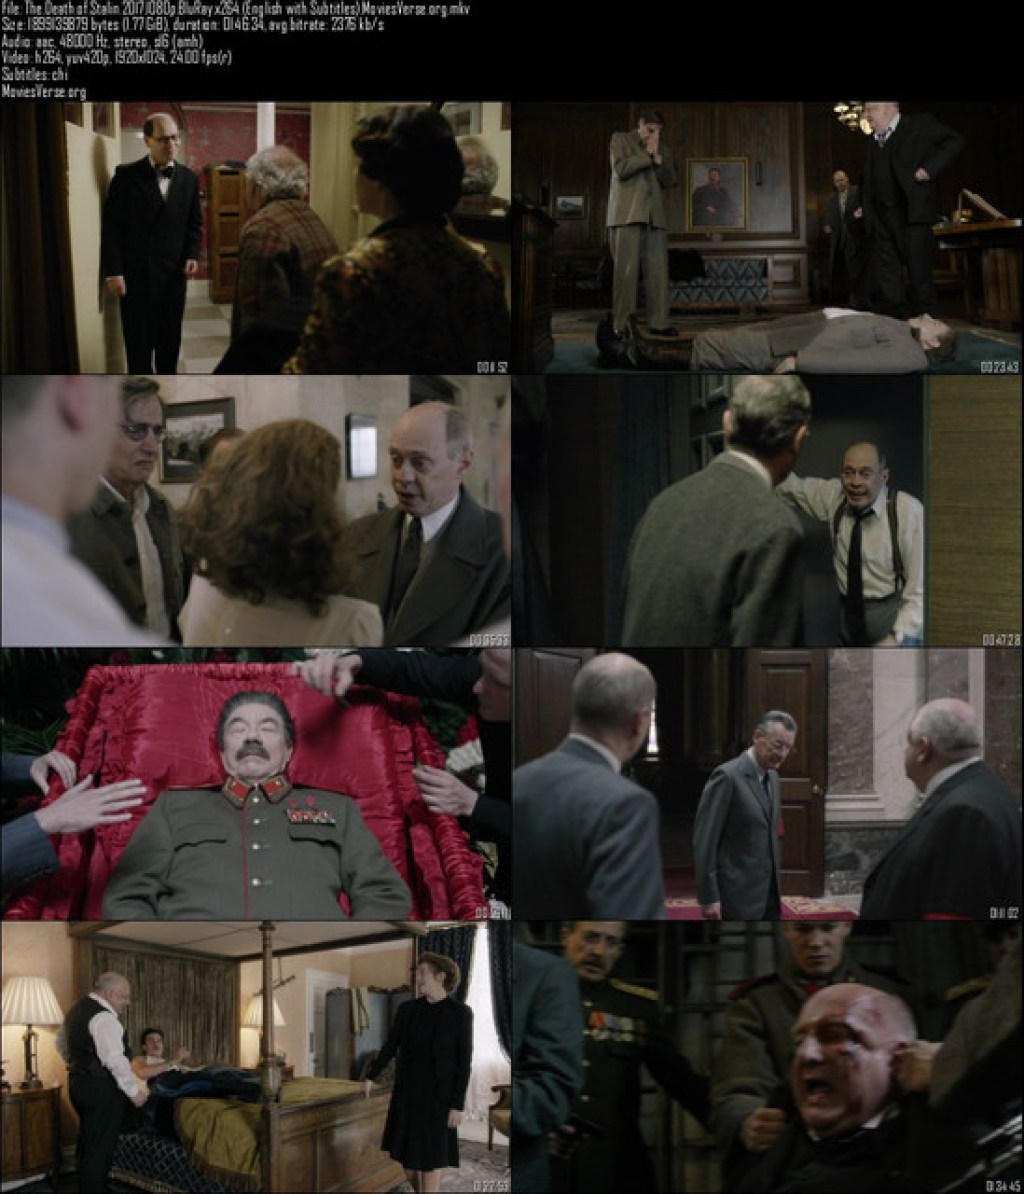 The-Death-of-Stalin-2017-1080p-Blu-Ray-x264-English-with-Subtitles-Movies-Verse-org